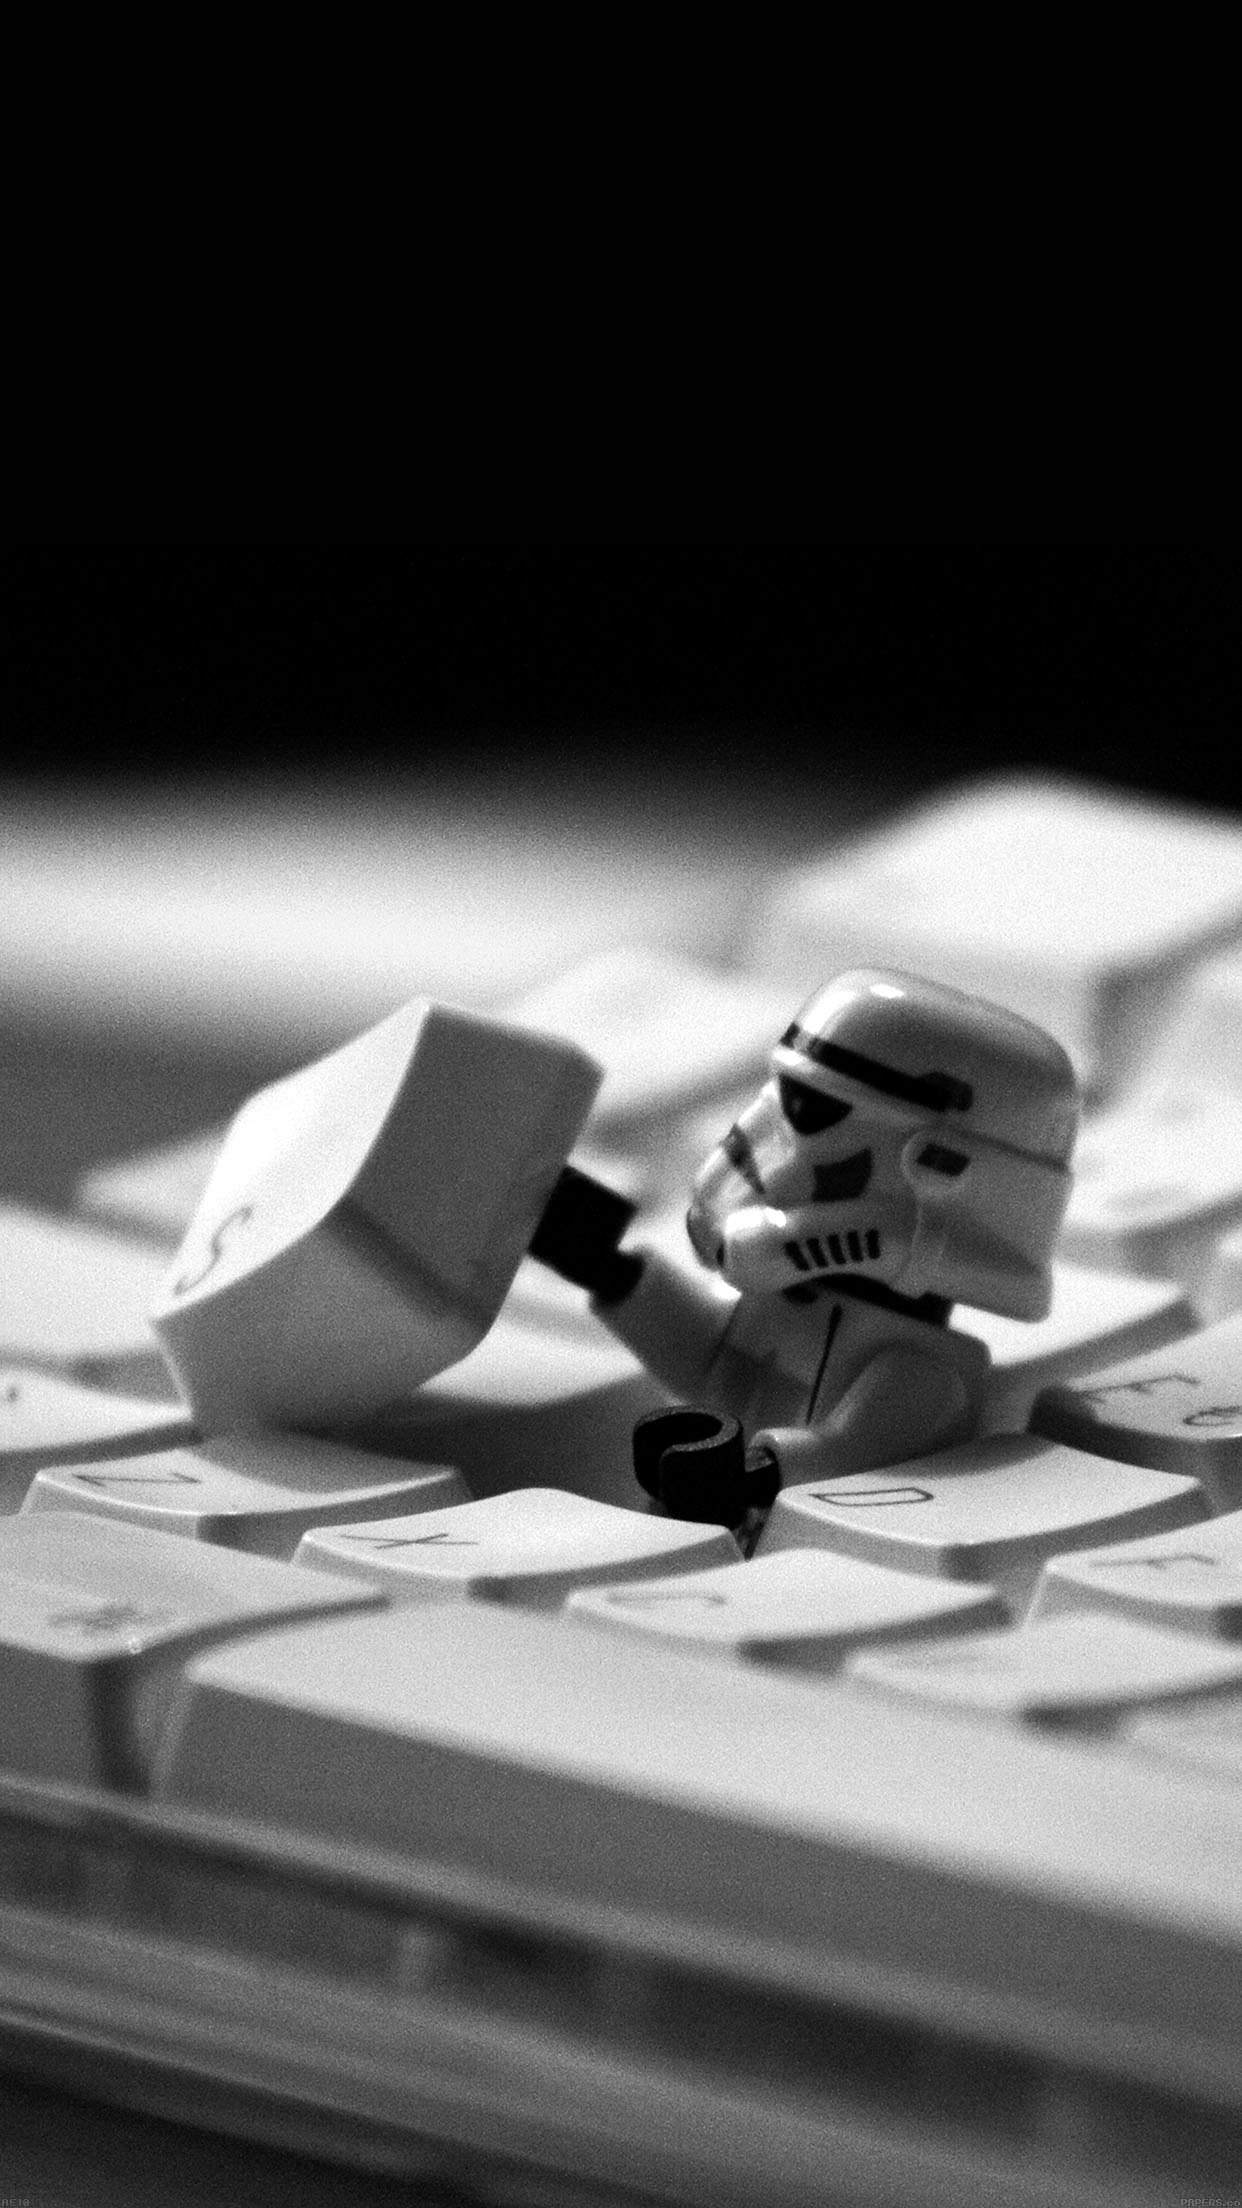 281 2810863 storm trooper starwars keyboard film android wallpaper funny